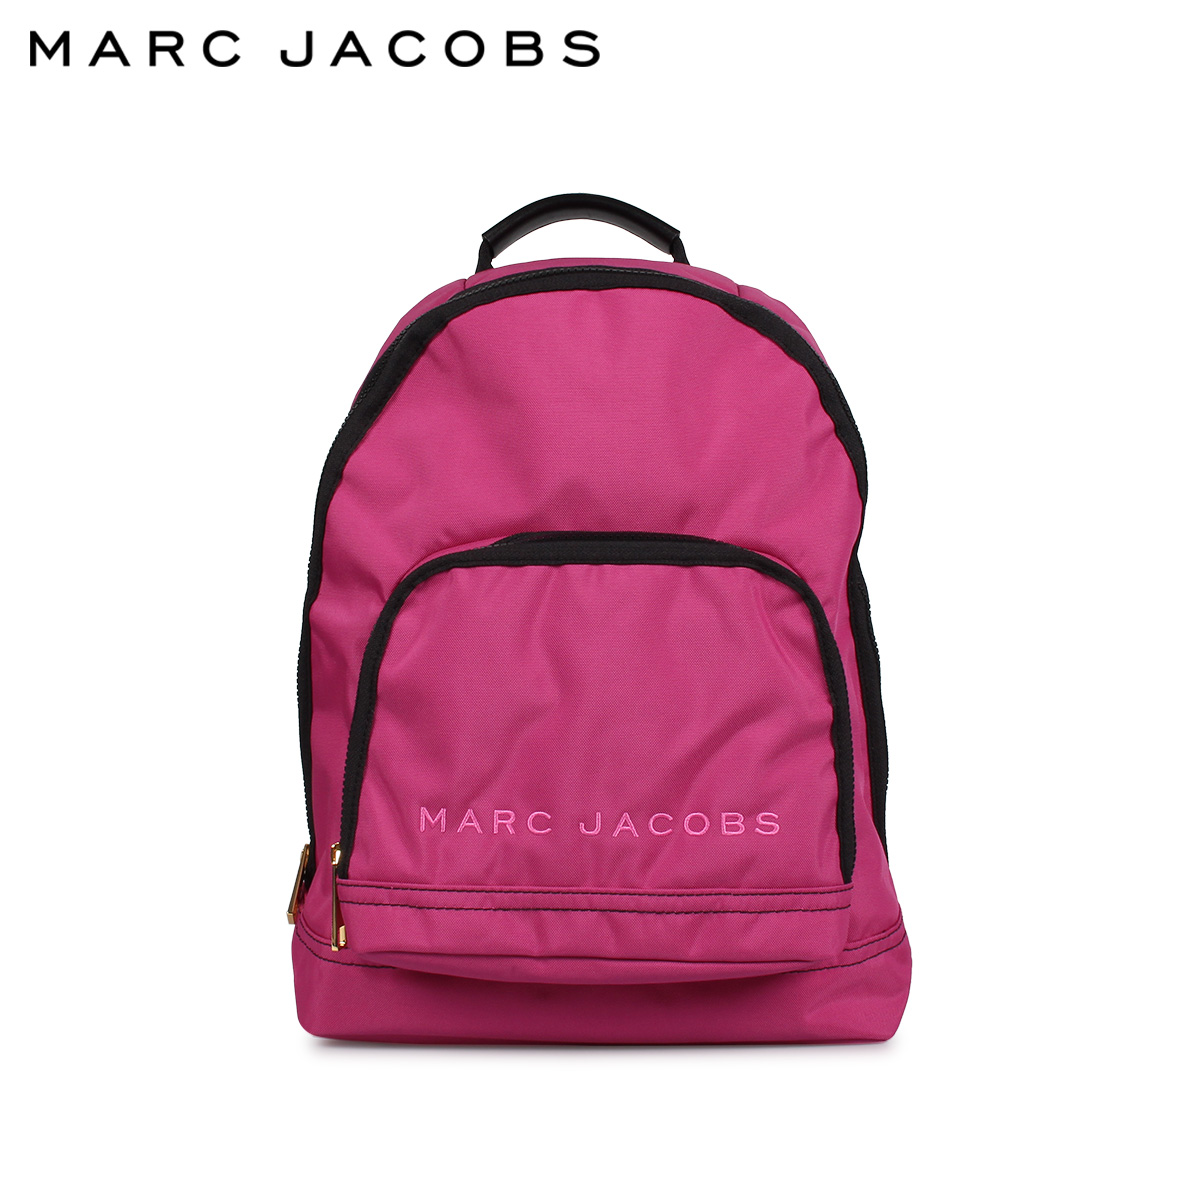 MARC JACOBS ALL STAR BACKPACK マークジェイコブス リュック バッグ バックパック レディース パープル M0014780